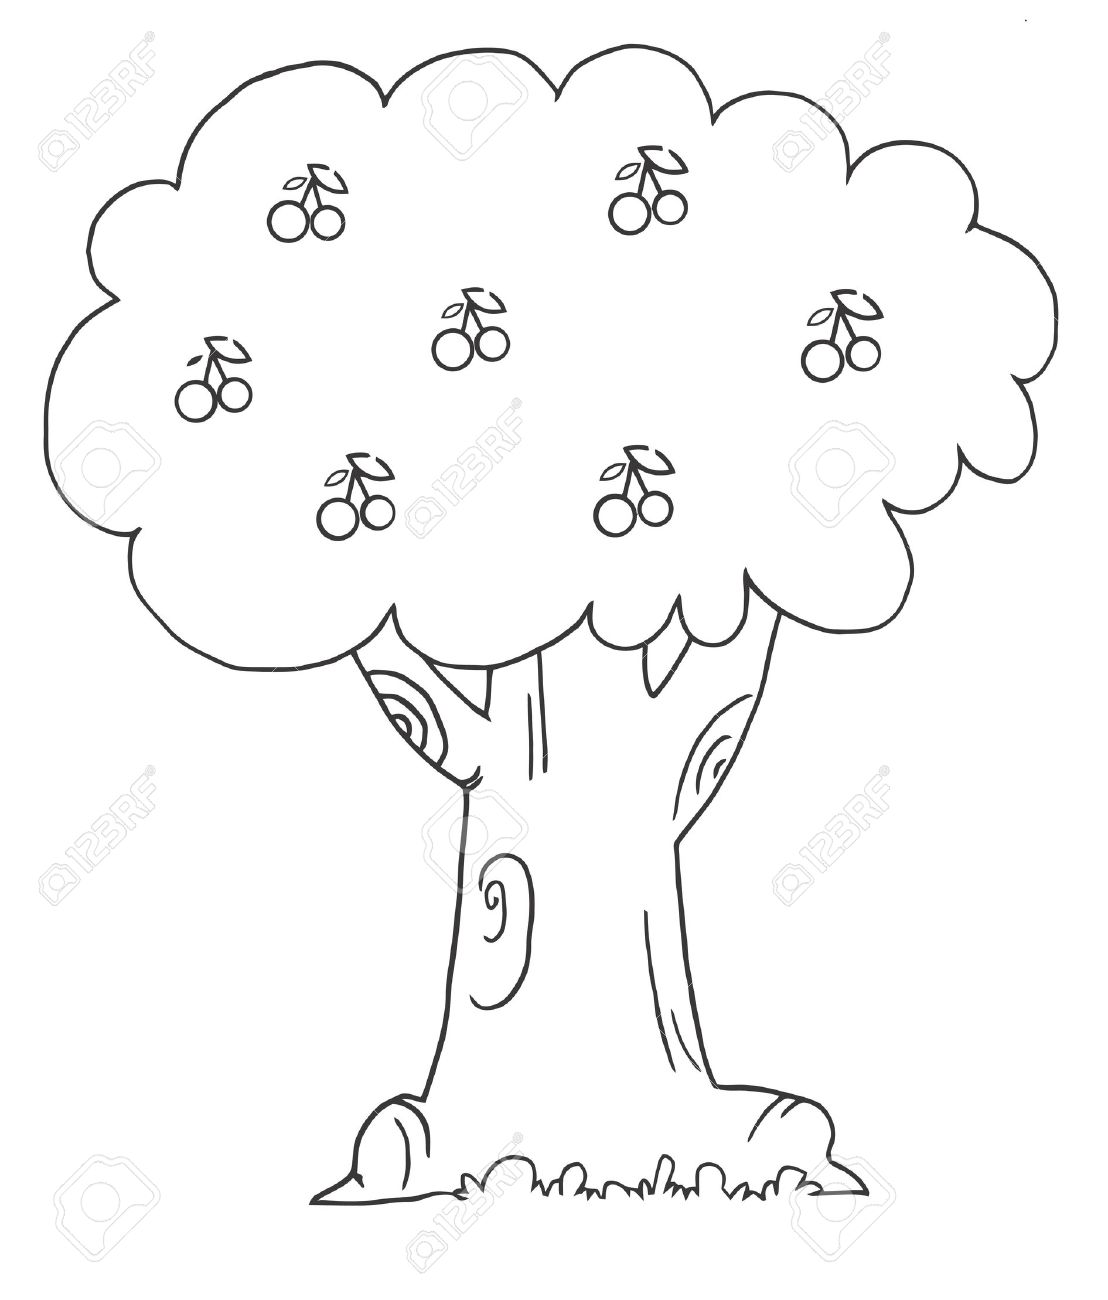 coloring page outline of a cherry tree royalty free cliparts